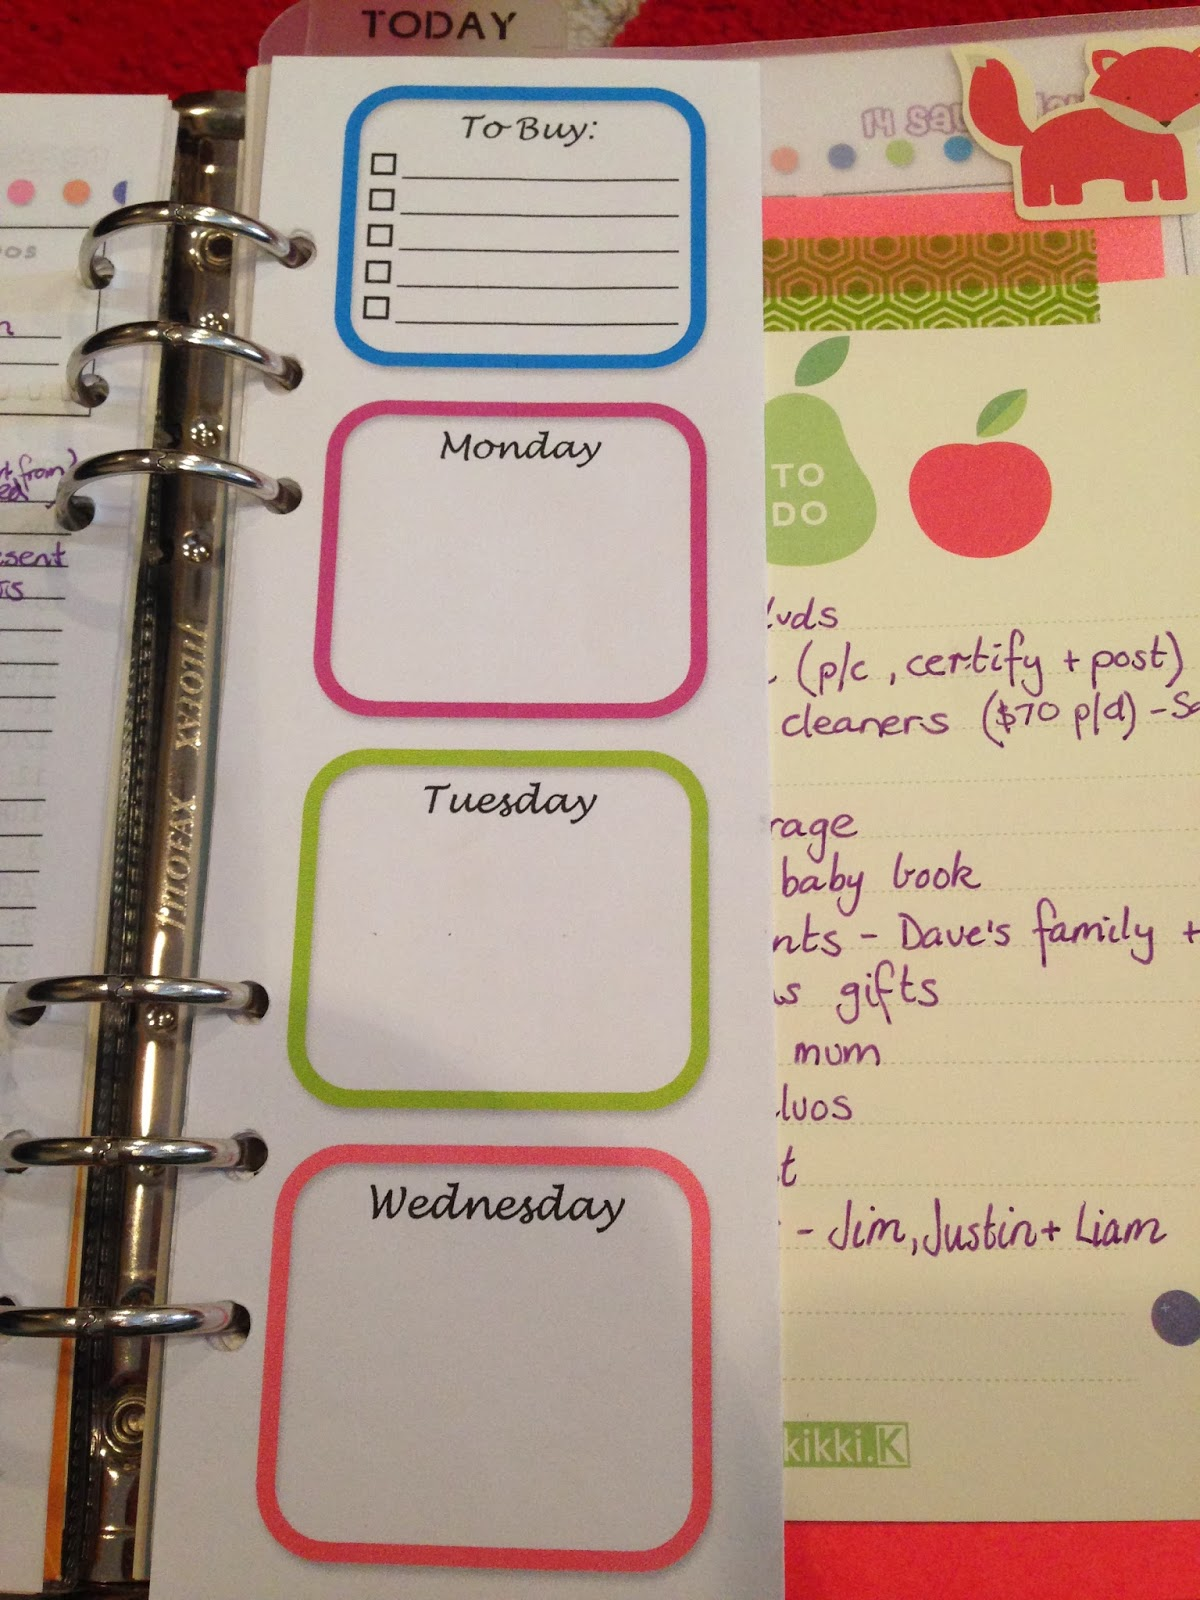 life goals a peek into my August 2, 2017 in life, peek at my week  stalls and letting these little things  motivate me to get back to work and create more content or work towards my  goals.